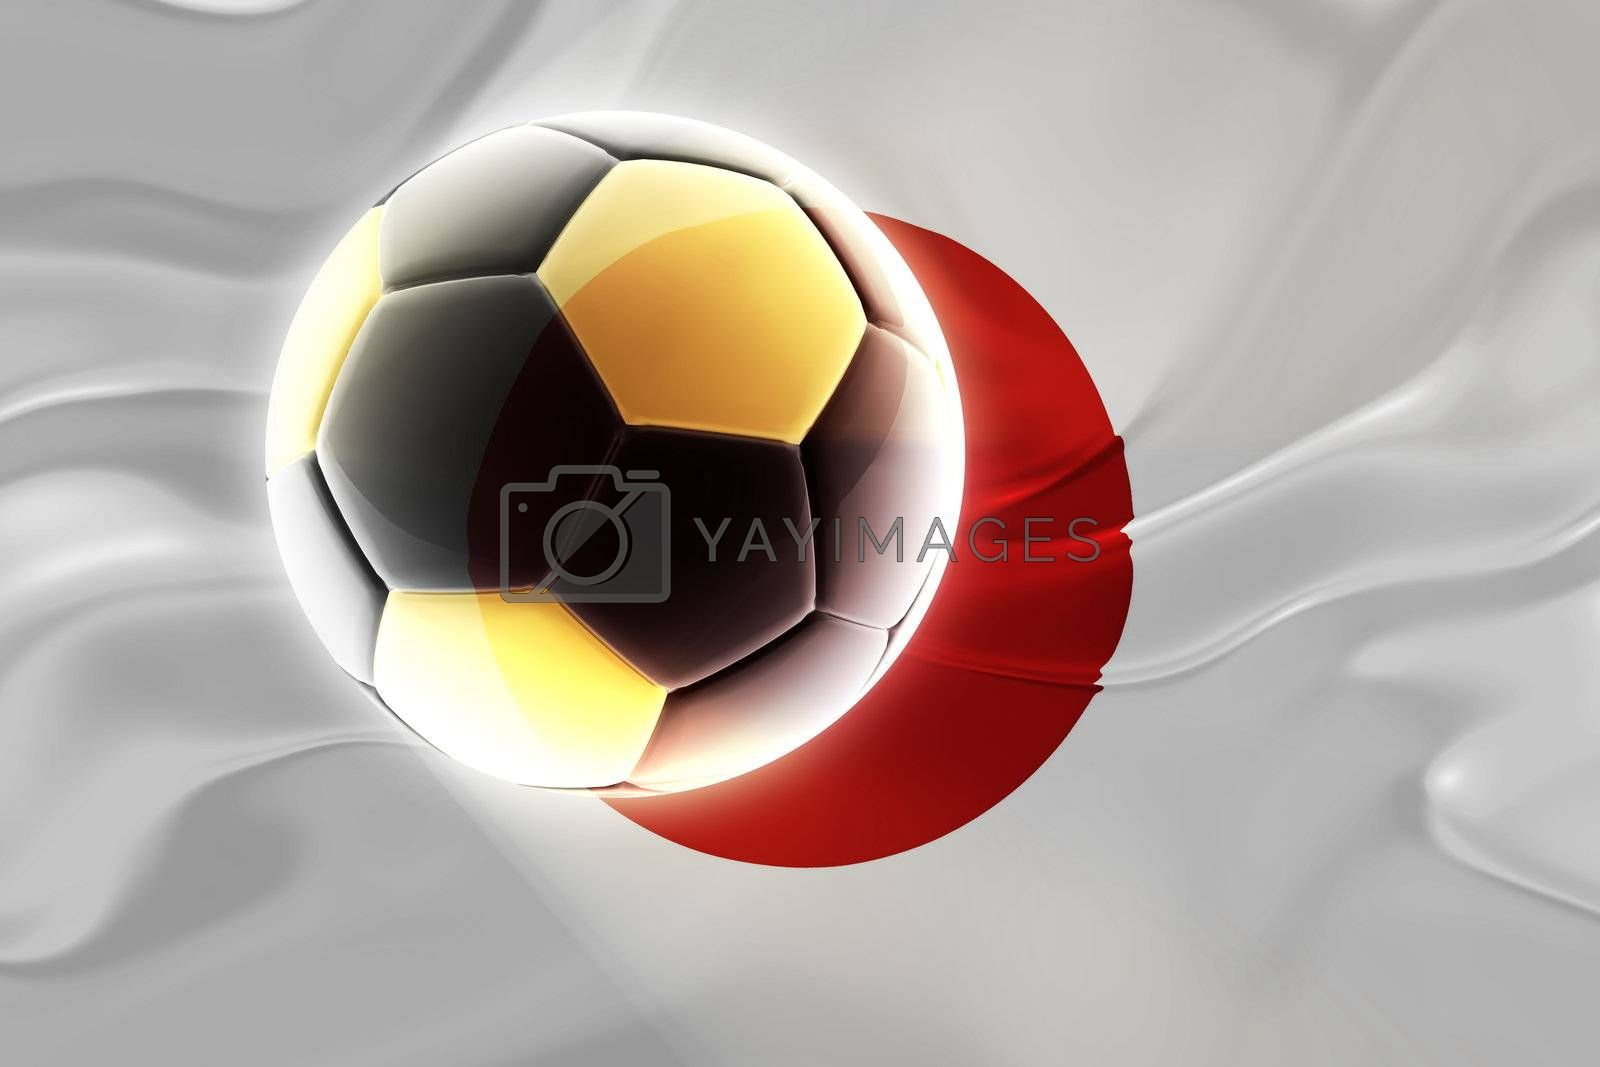 Flag of Japan, national country symbol illustration wavy fabric sports soccer football